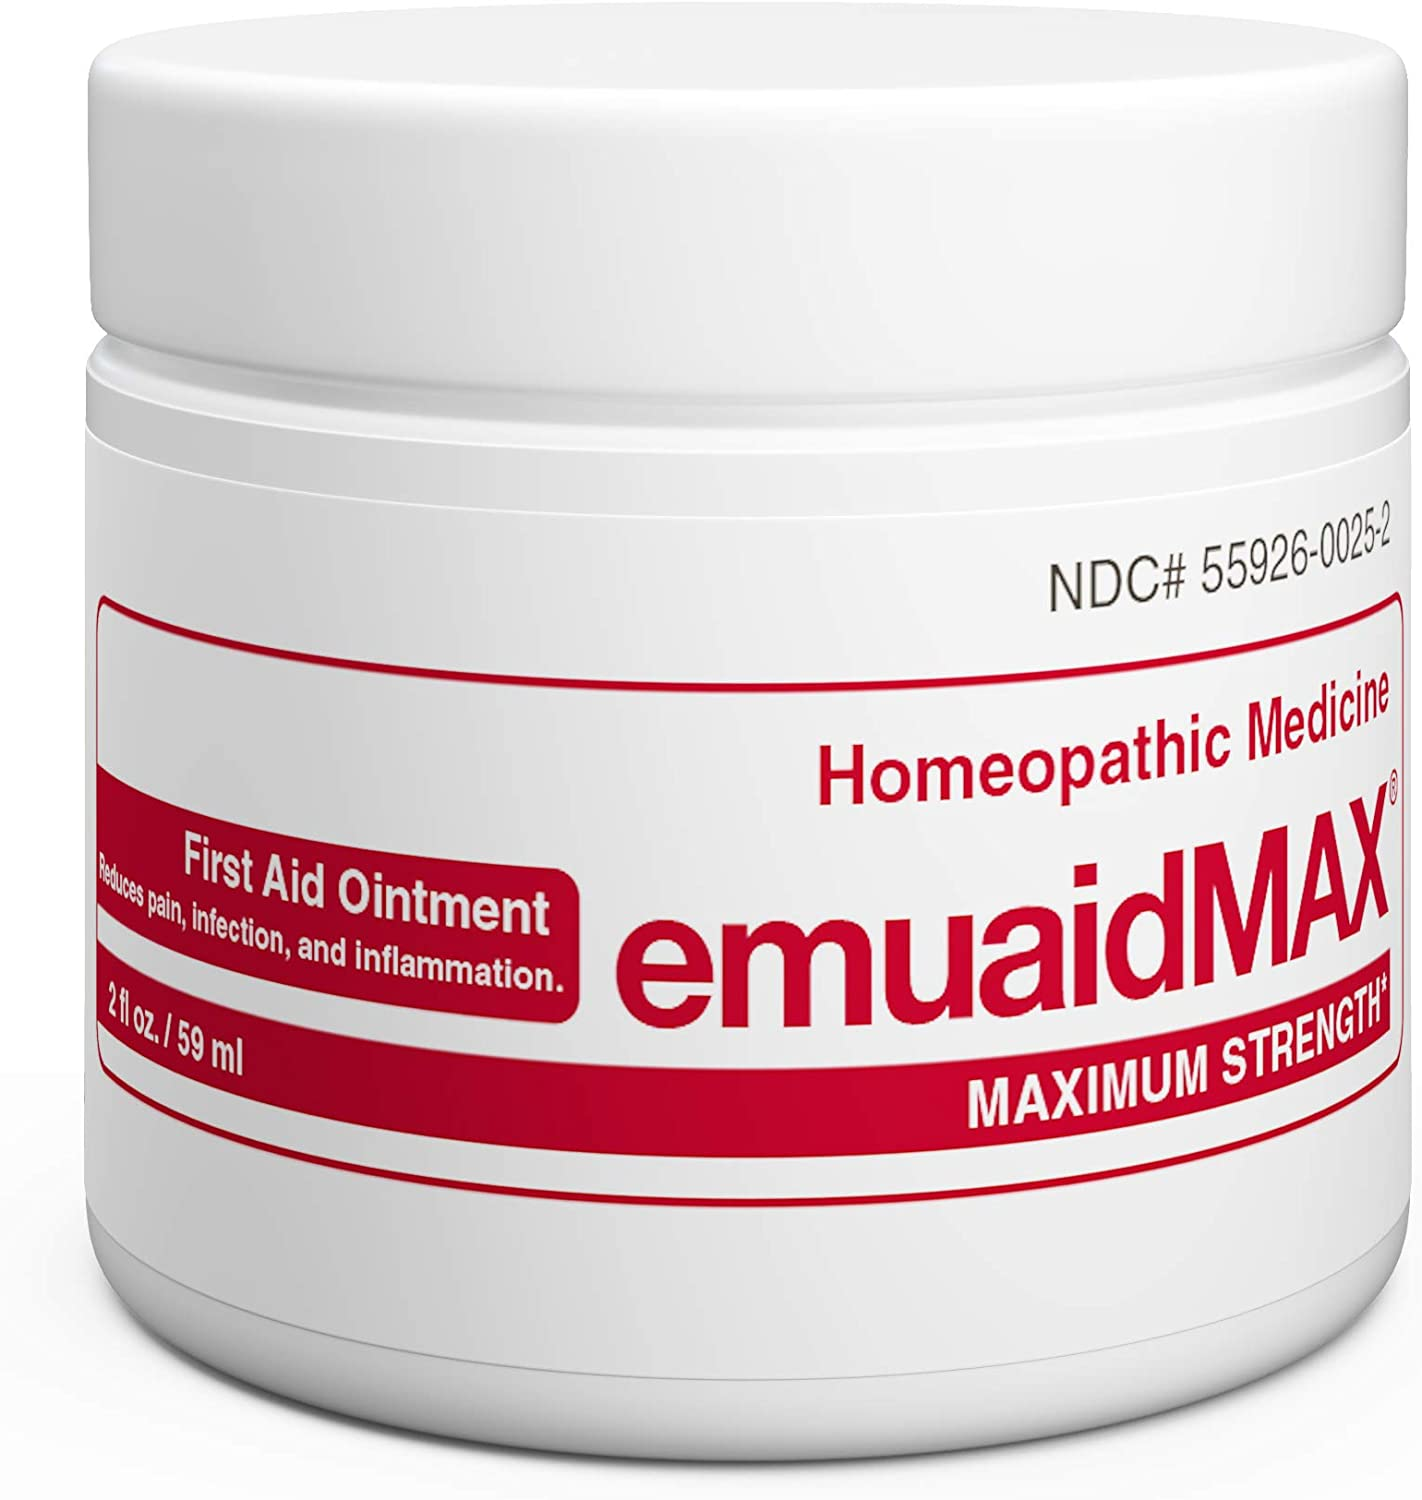 EMUAID Max Max 81% OFF First Aid Ounce Mail order Ointment 2